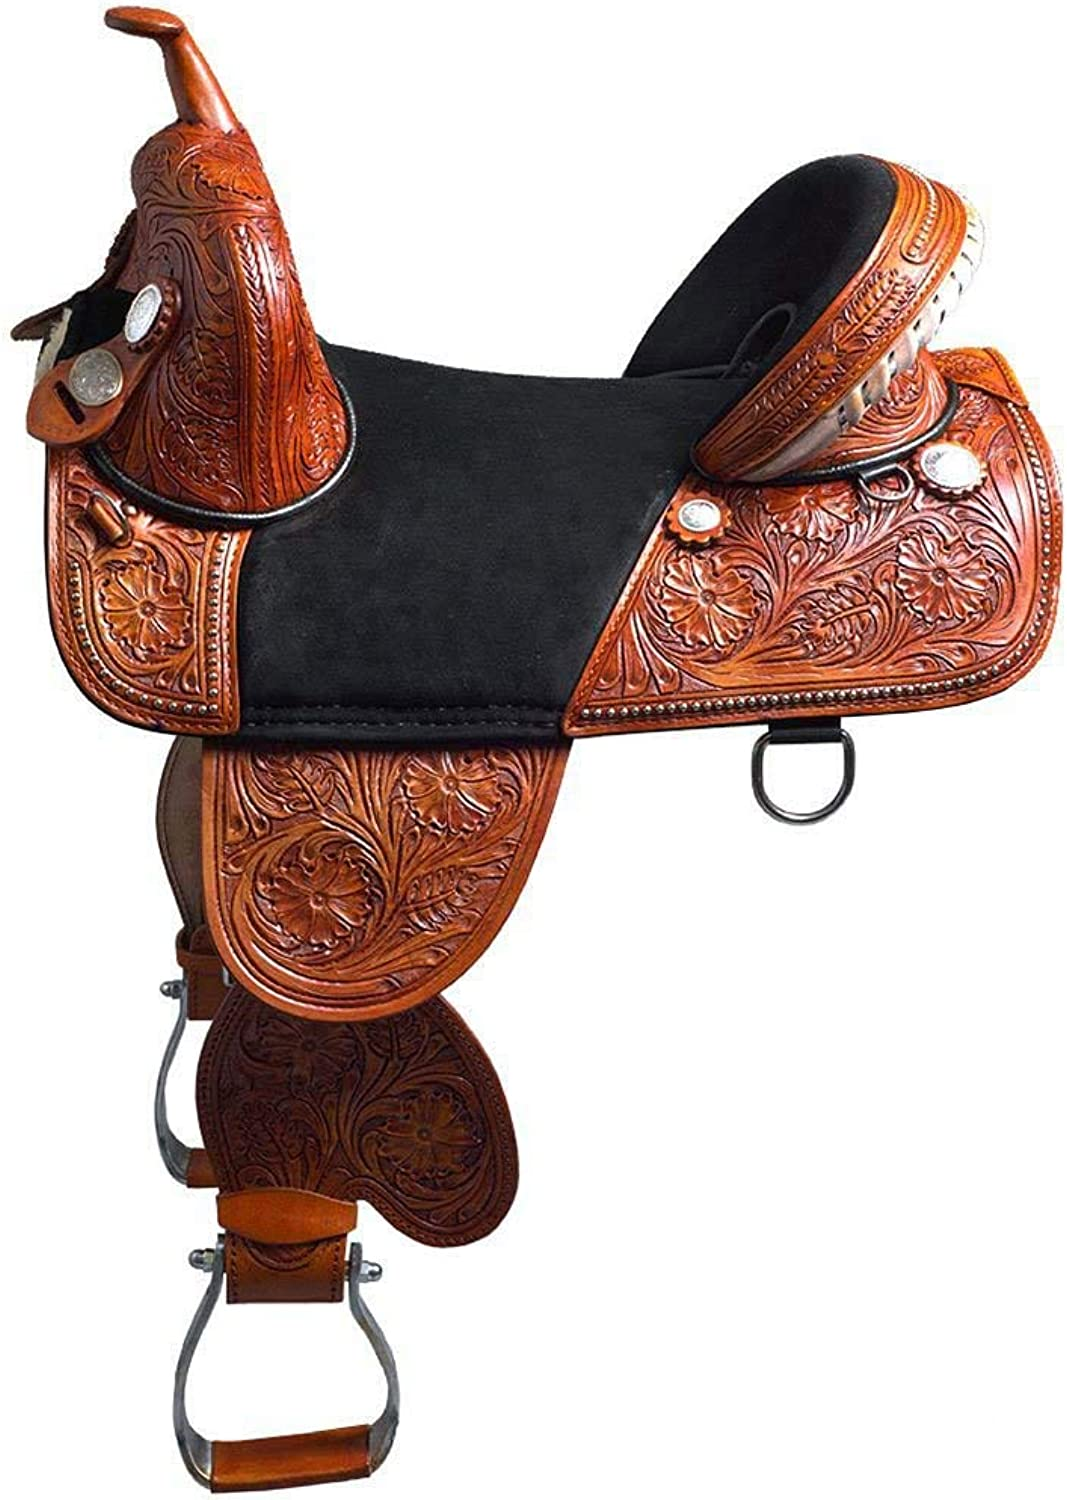 "Manaal Enterprises Adult Western Trail Barrel Racing Premium Leather TREELESS Horse Saddle Tack Size 14  to 18  inch Seat Available (15.5"" Inch Seat)"